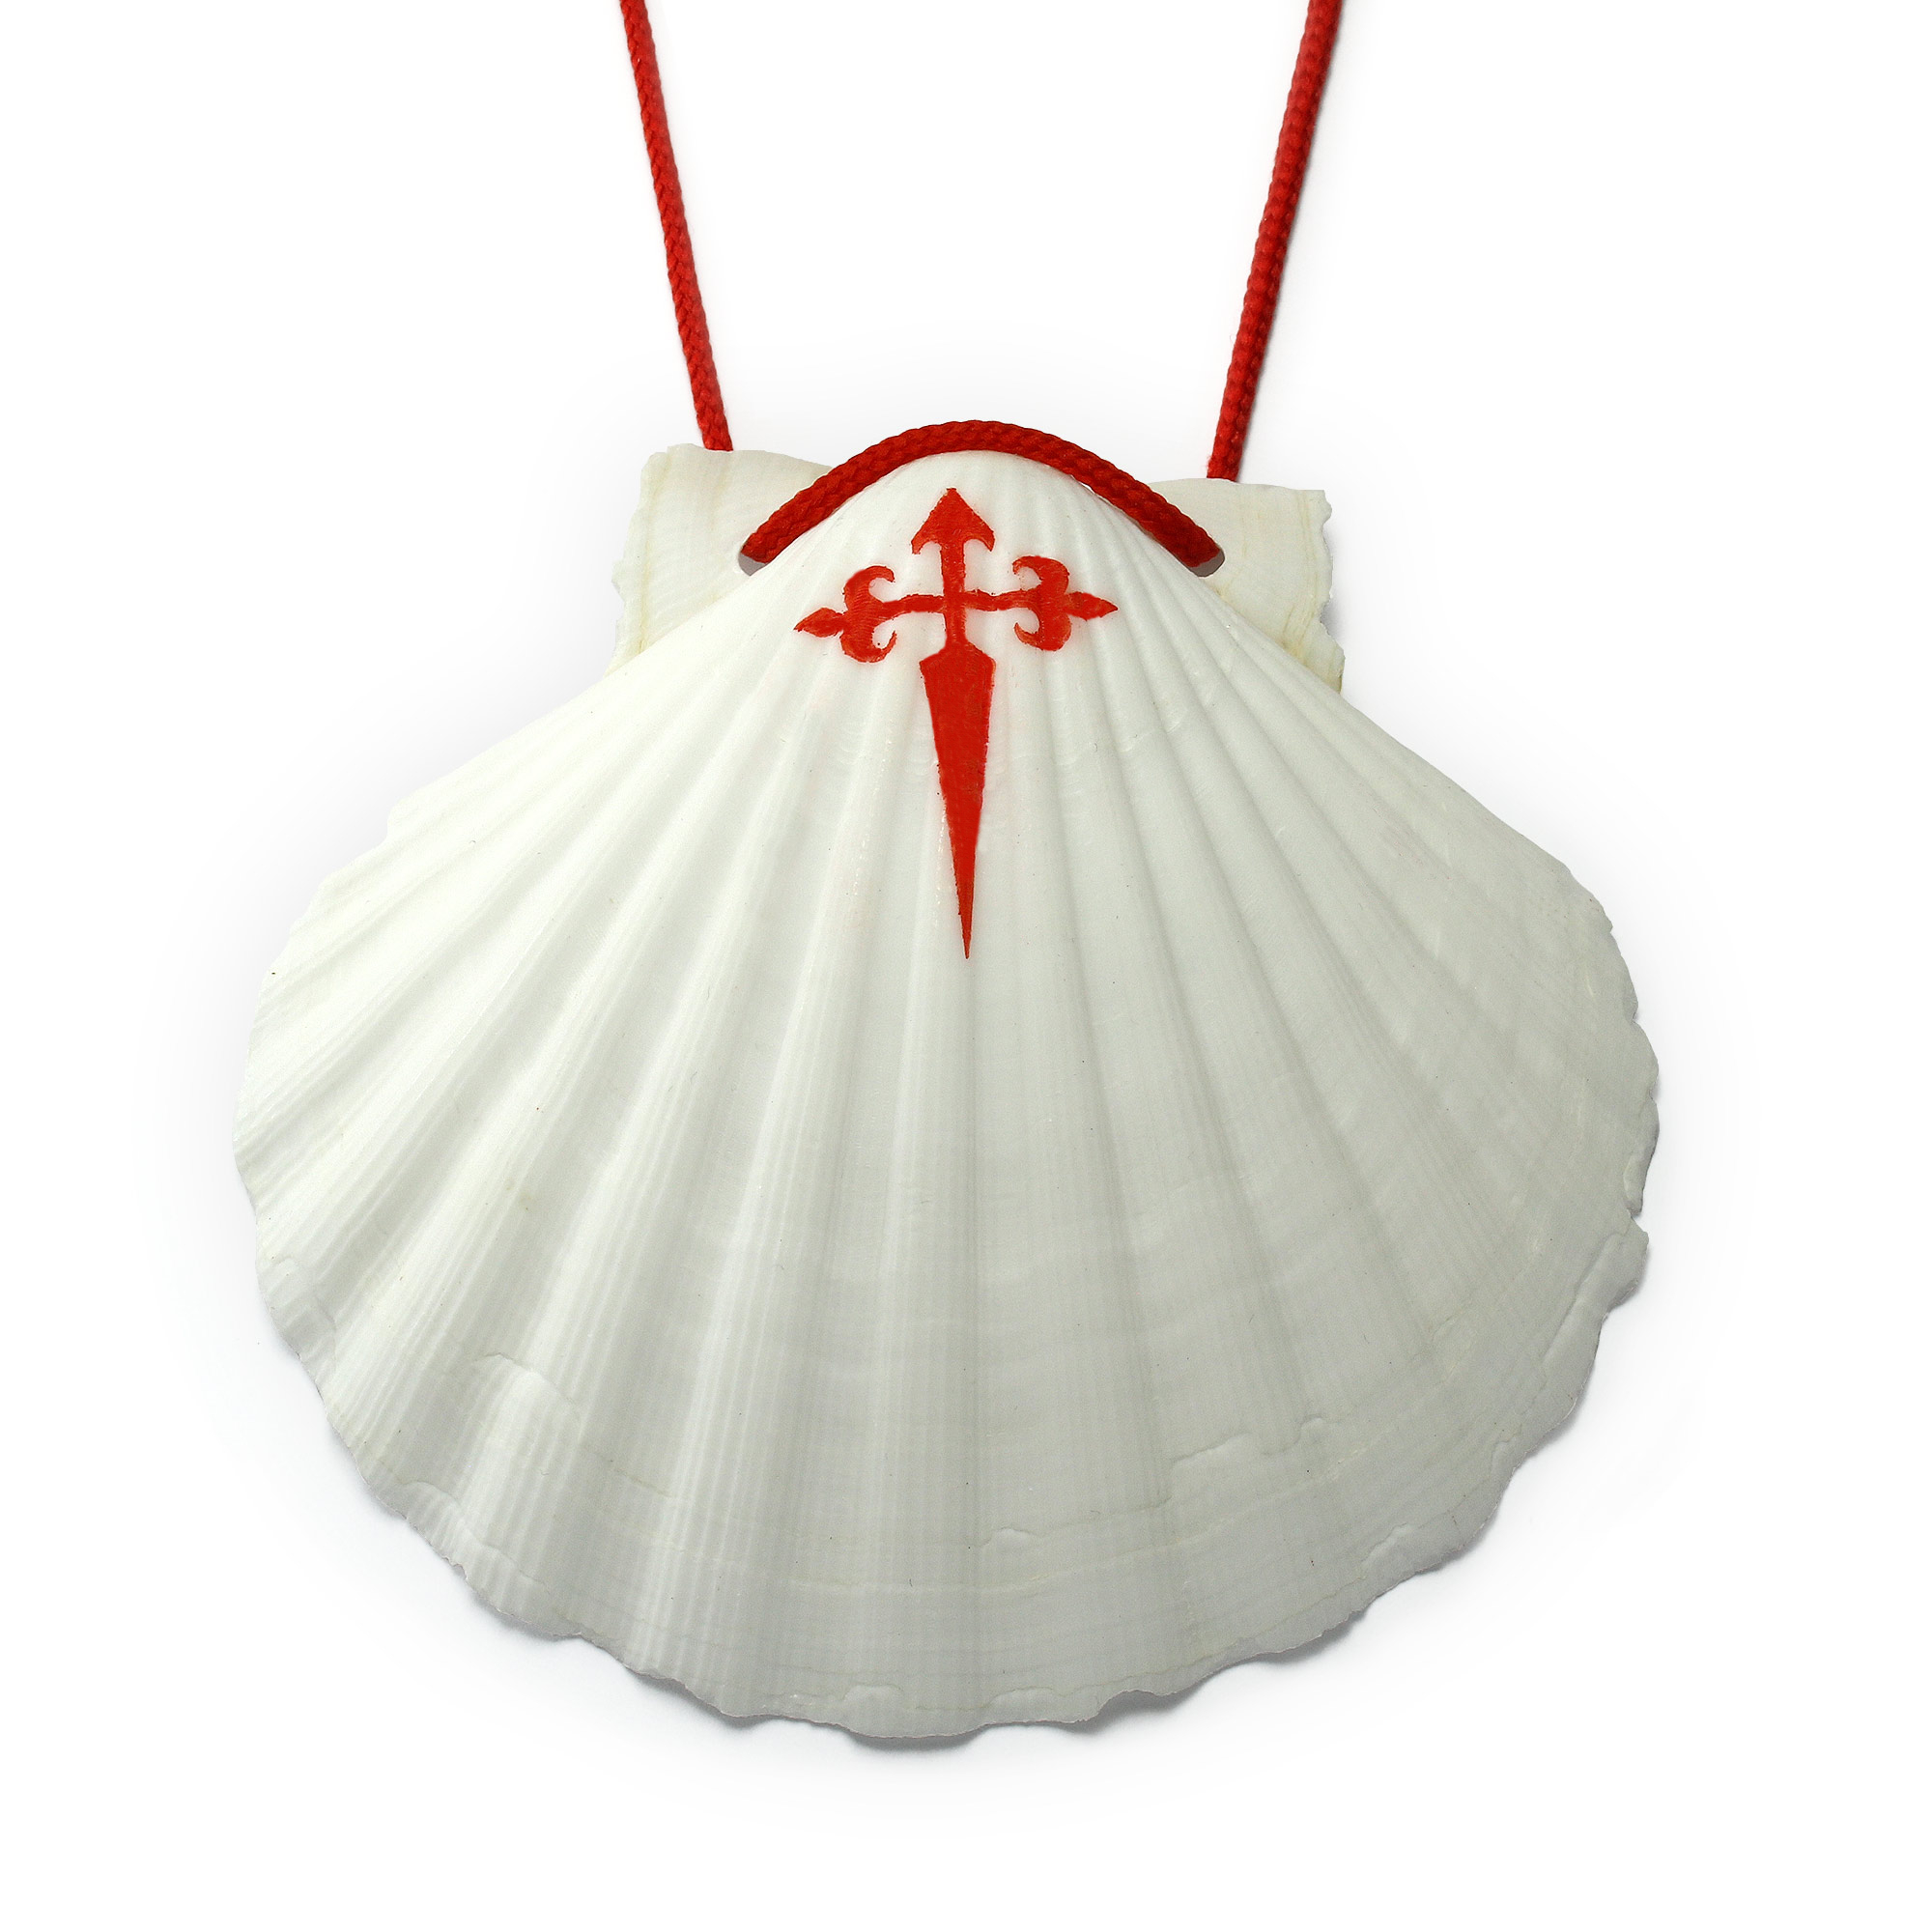 scallop shells Way of St. James